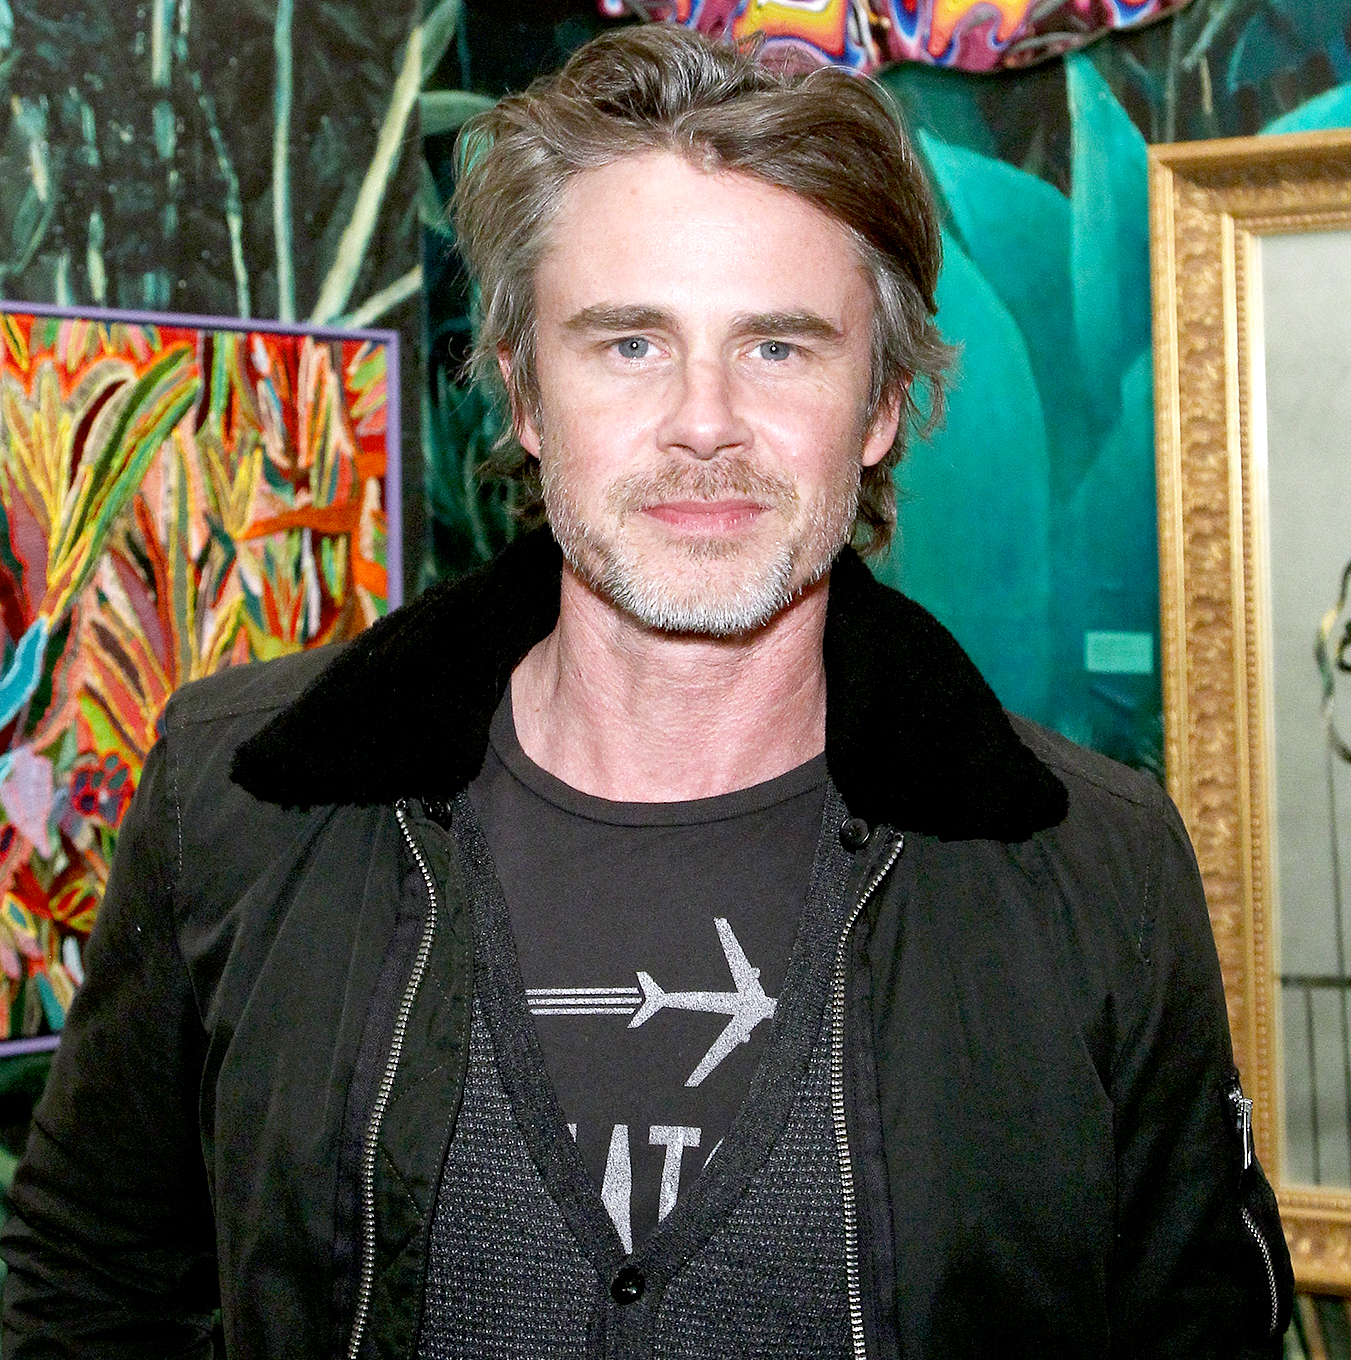 Sam Trammell attends the Art Los Angeles Contemporary 2017 opening night at Barker Hangar on January 26, 2017 in Santa Monica, California.